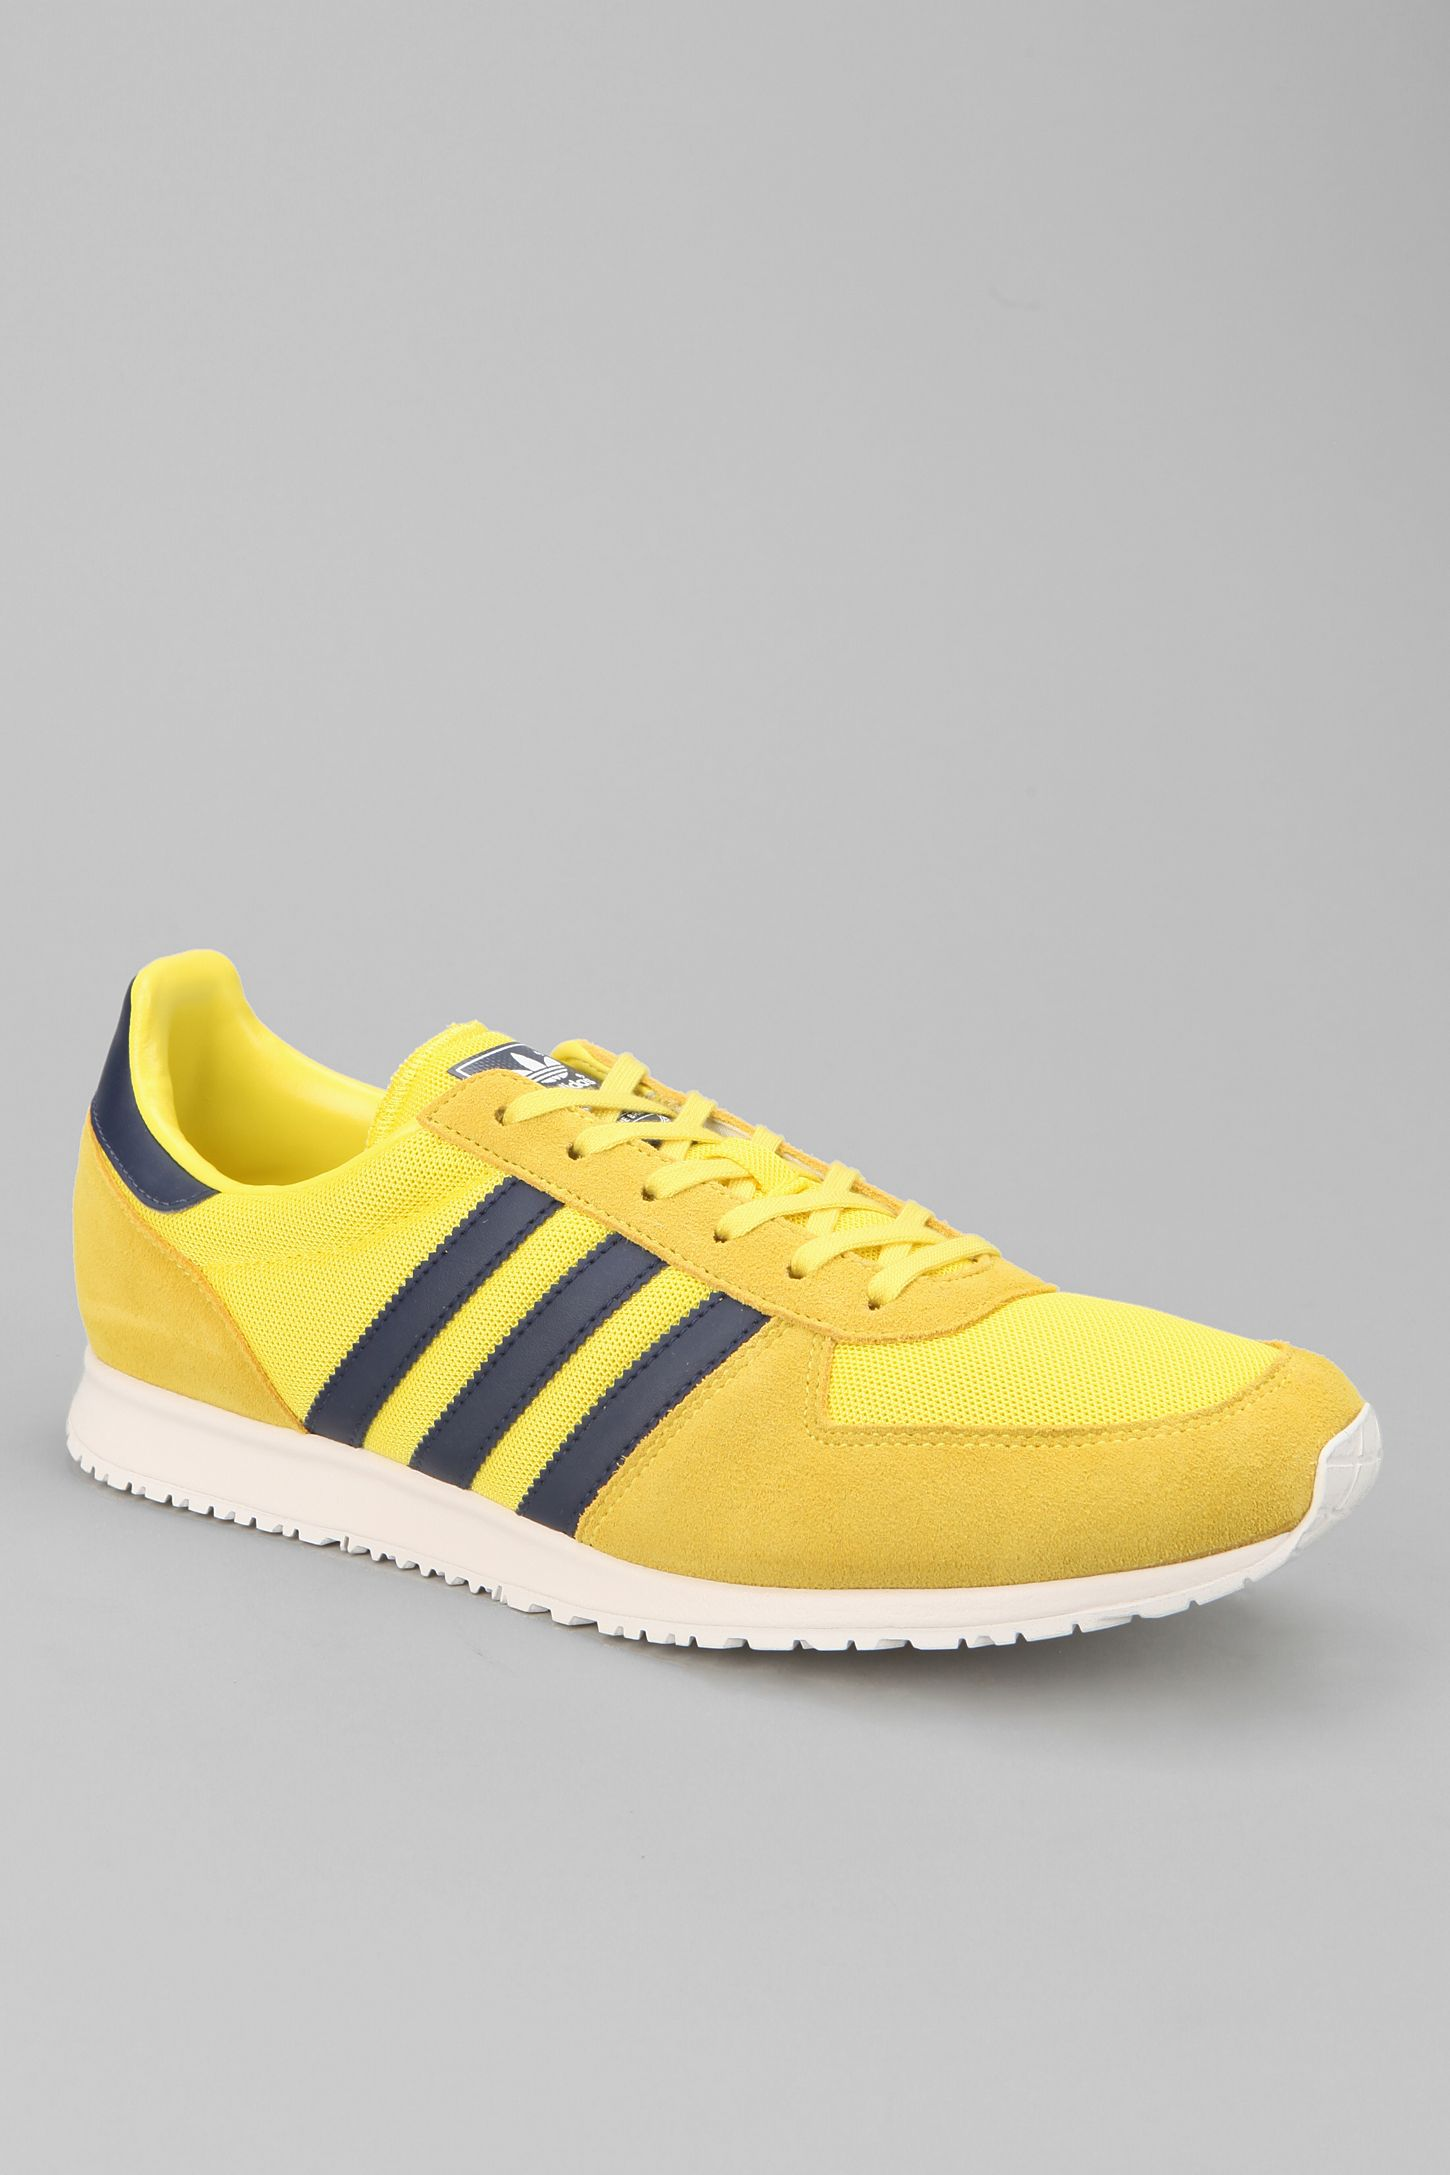 ce70f0ad866c66 Adidas Adistar Racer Sneaker - Best Pictures Of Adidas Carimages.Org